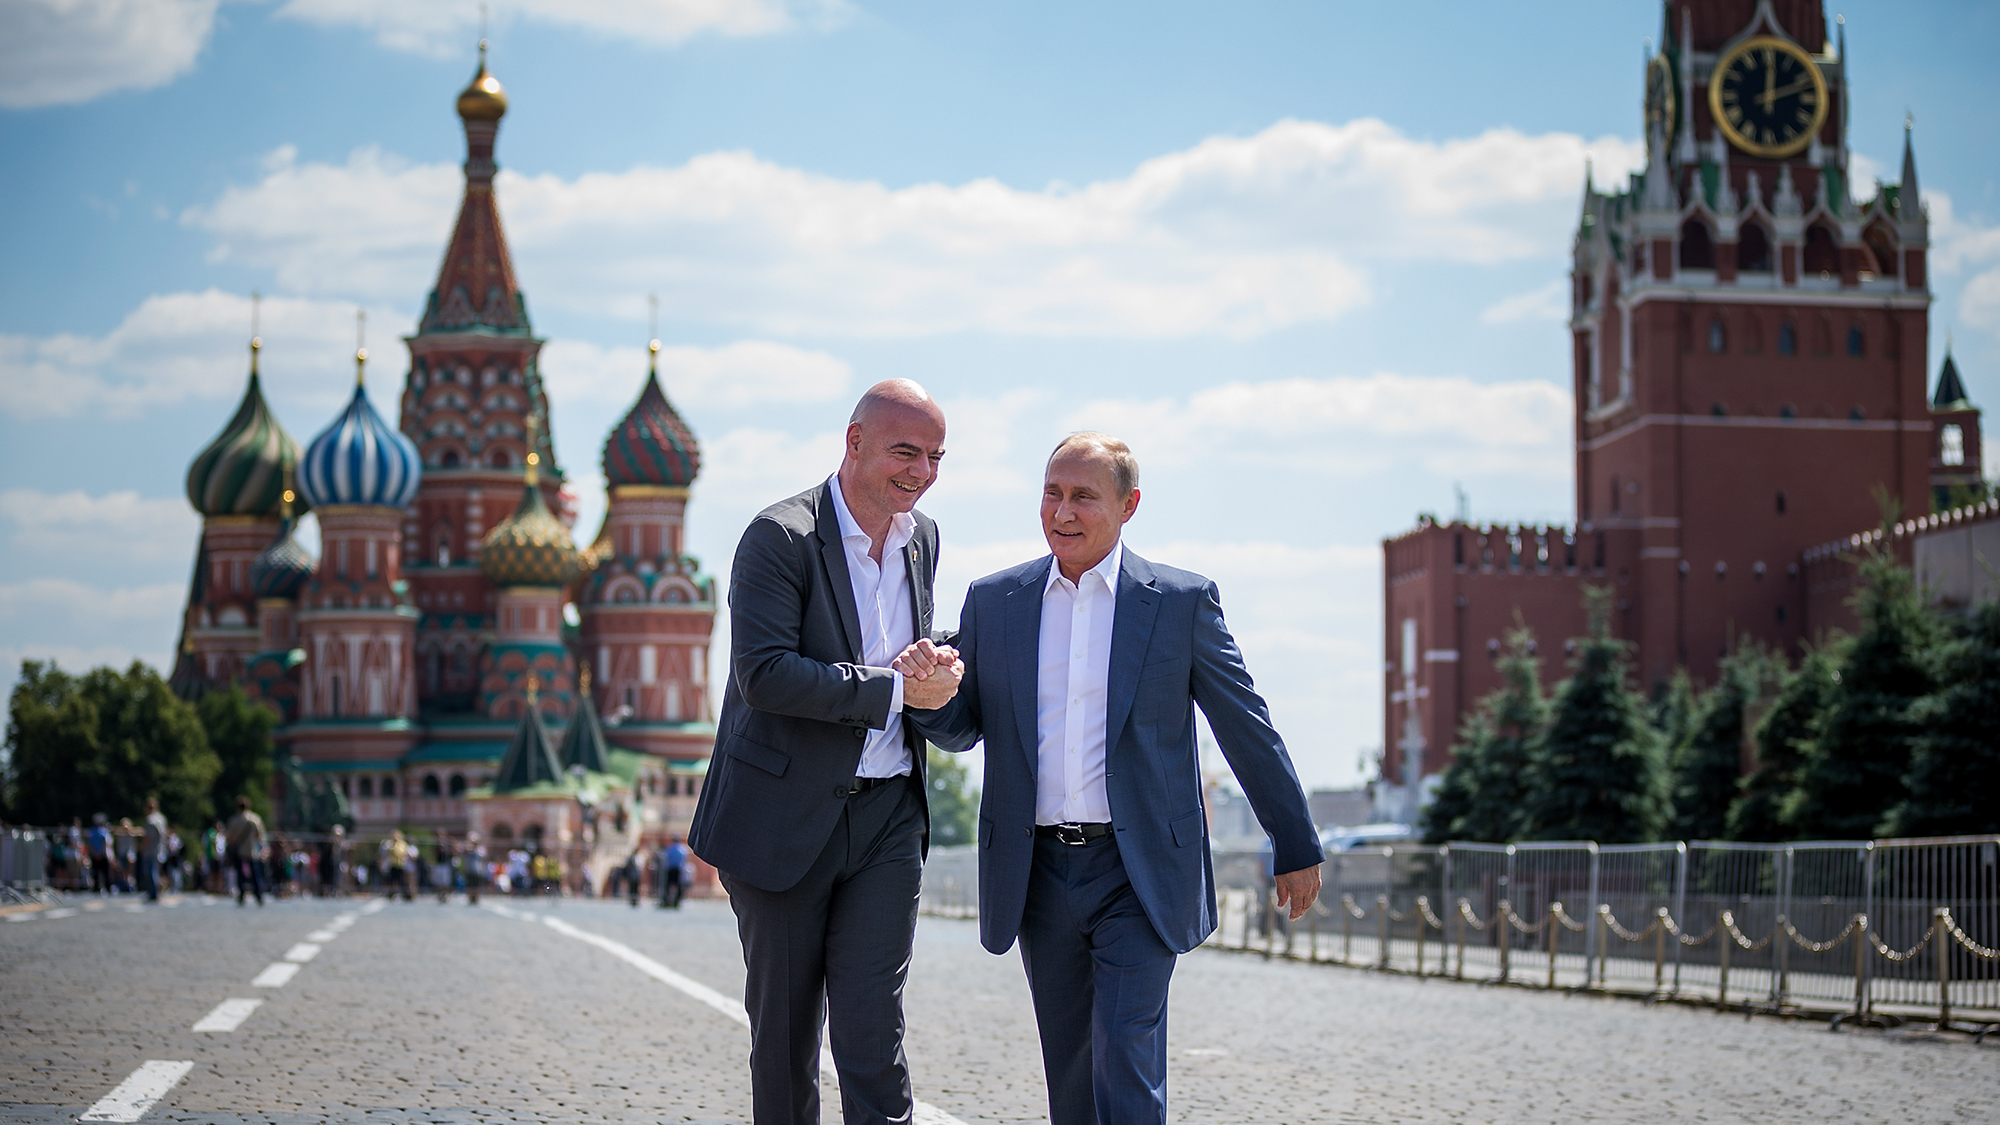 MOSCOW, RUSSIA - JUNE 28: Gianni Infantino and Vladimir Putin meet at Red Square on June 28, 2018 in Moscow, Russia. (Photo b